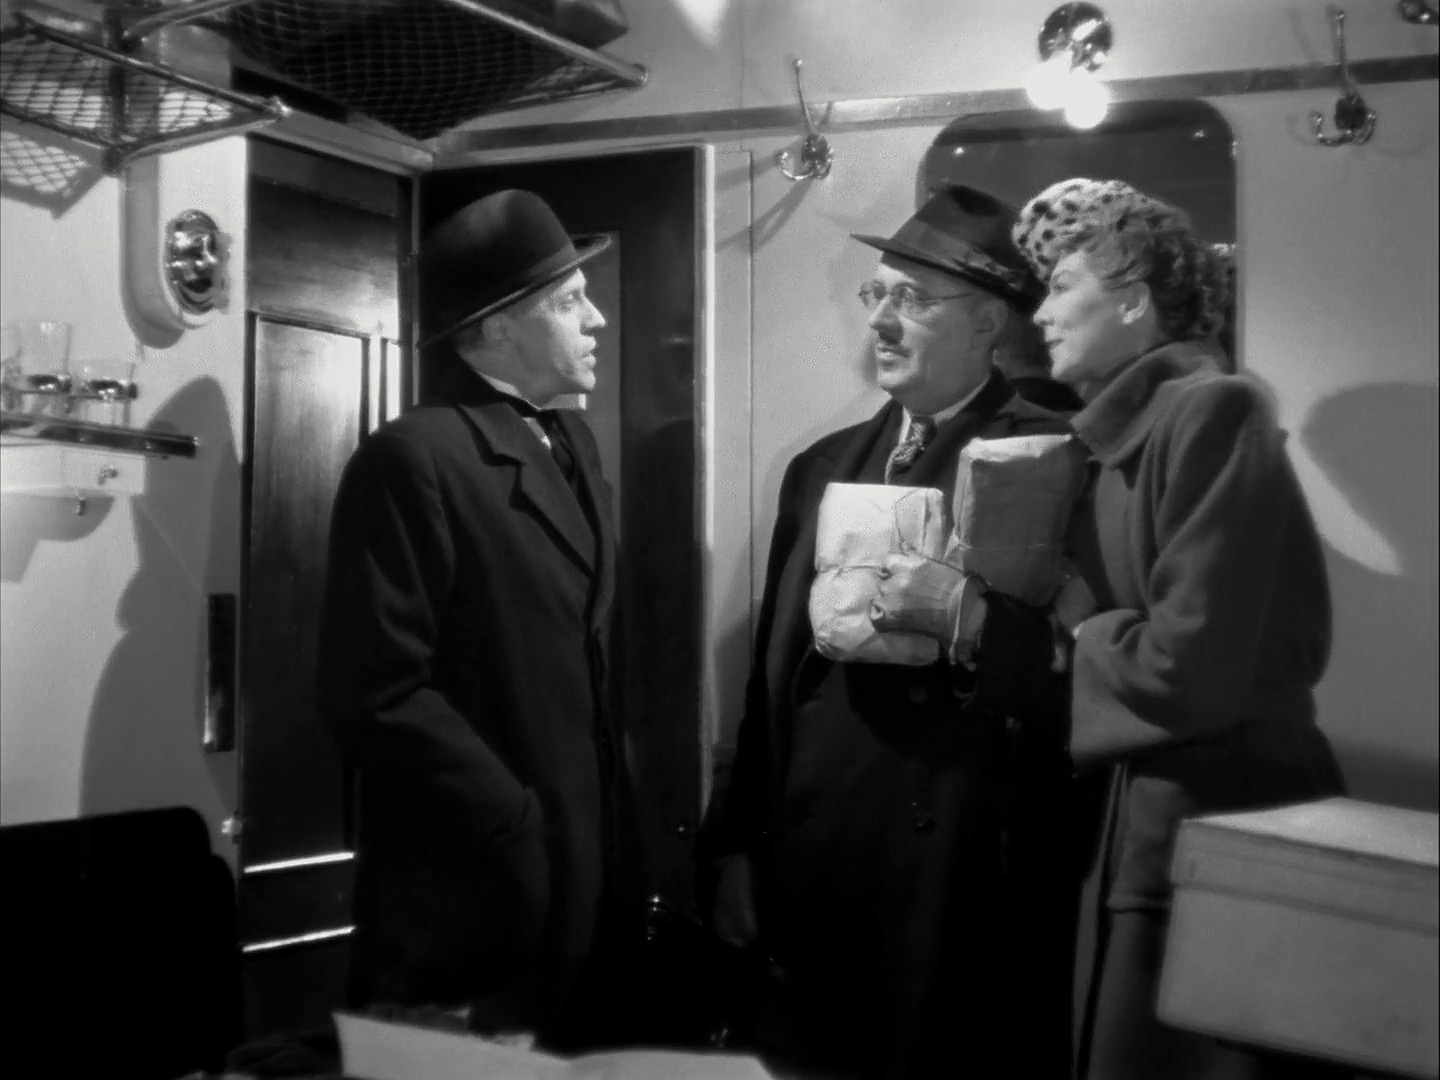 George Carney, Wendy Hiller, and Walter Hudd in I Know Where I'm Going! (1945)